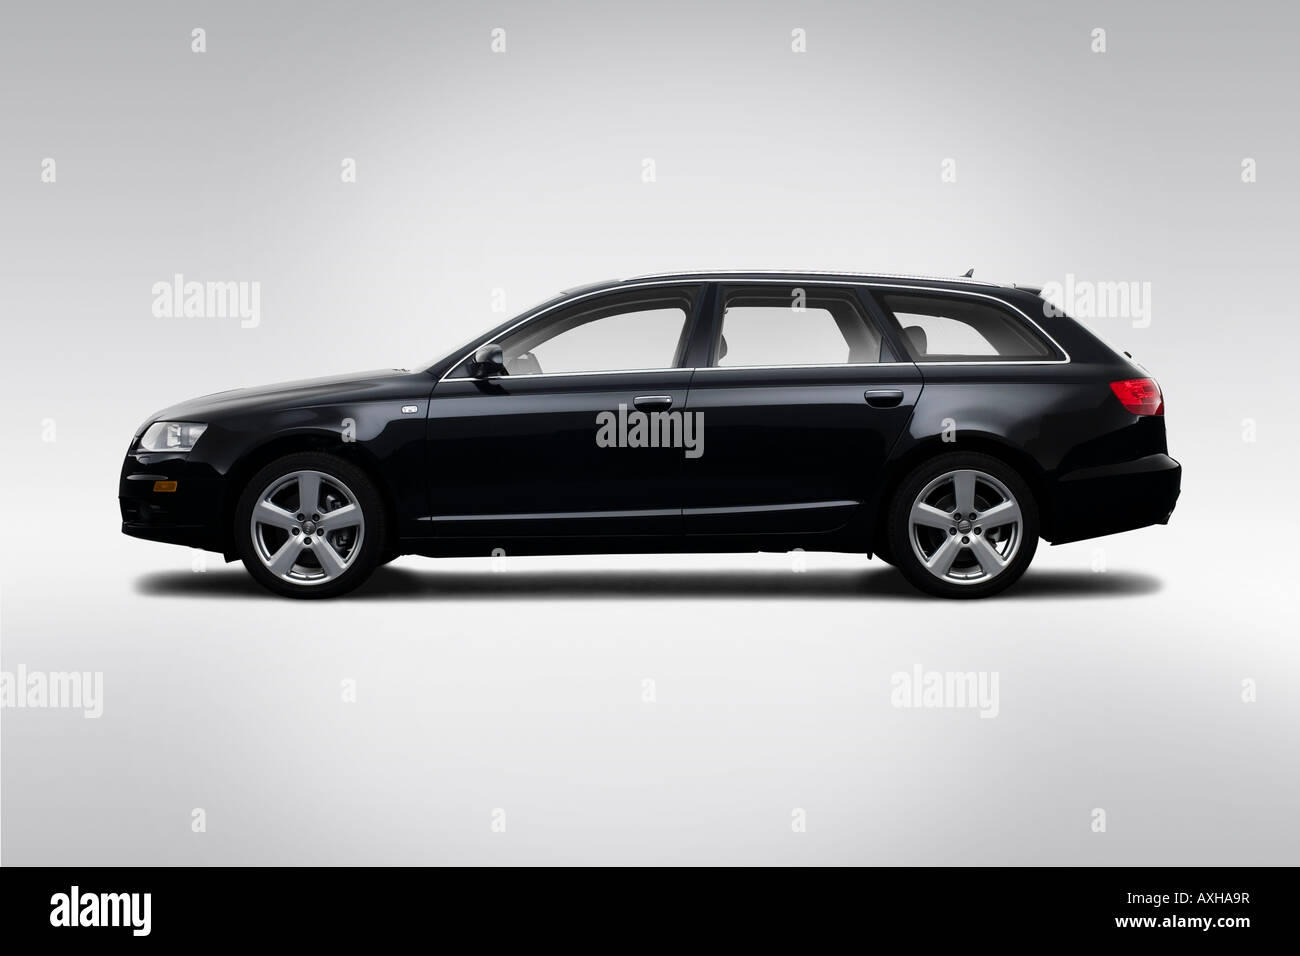 Kekurangan Audi A6 2008 Review